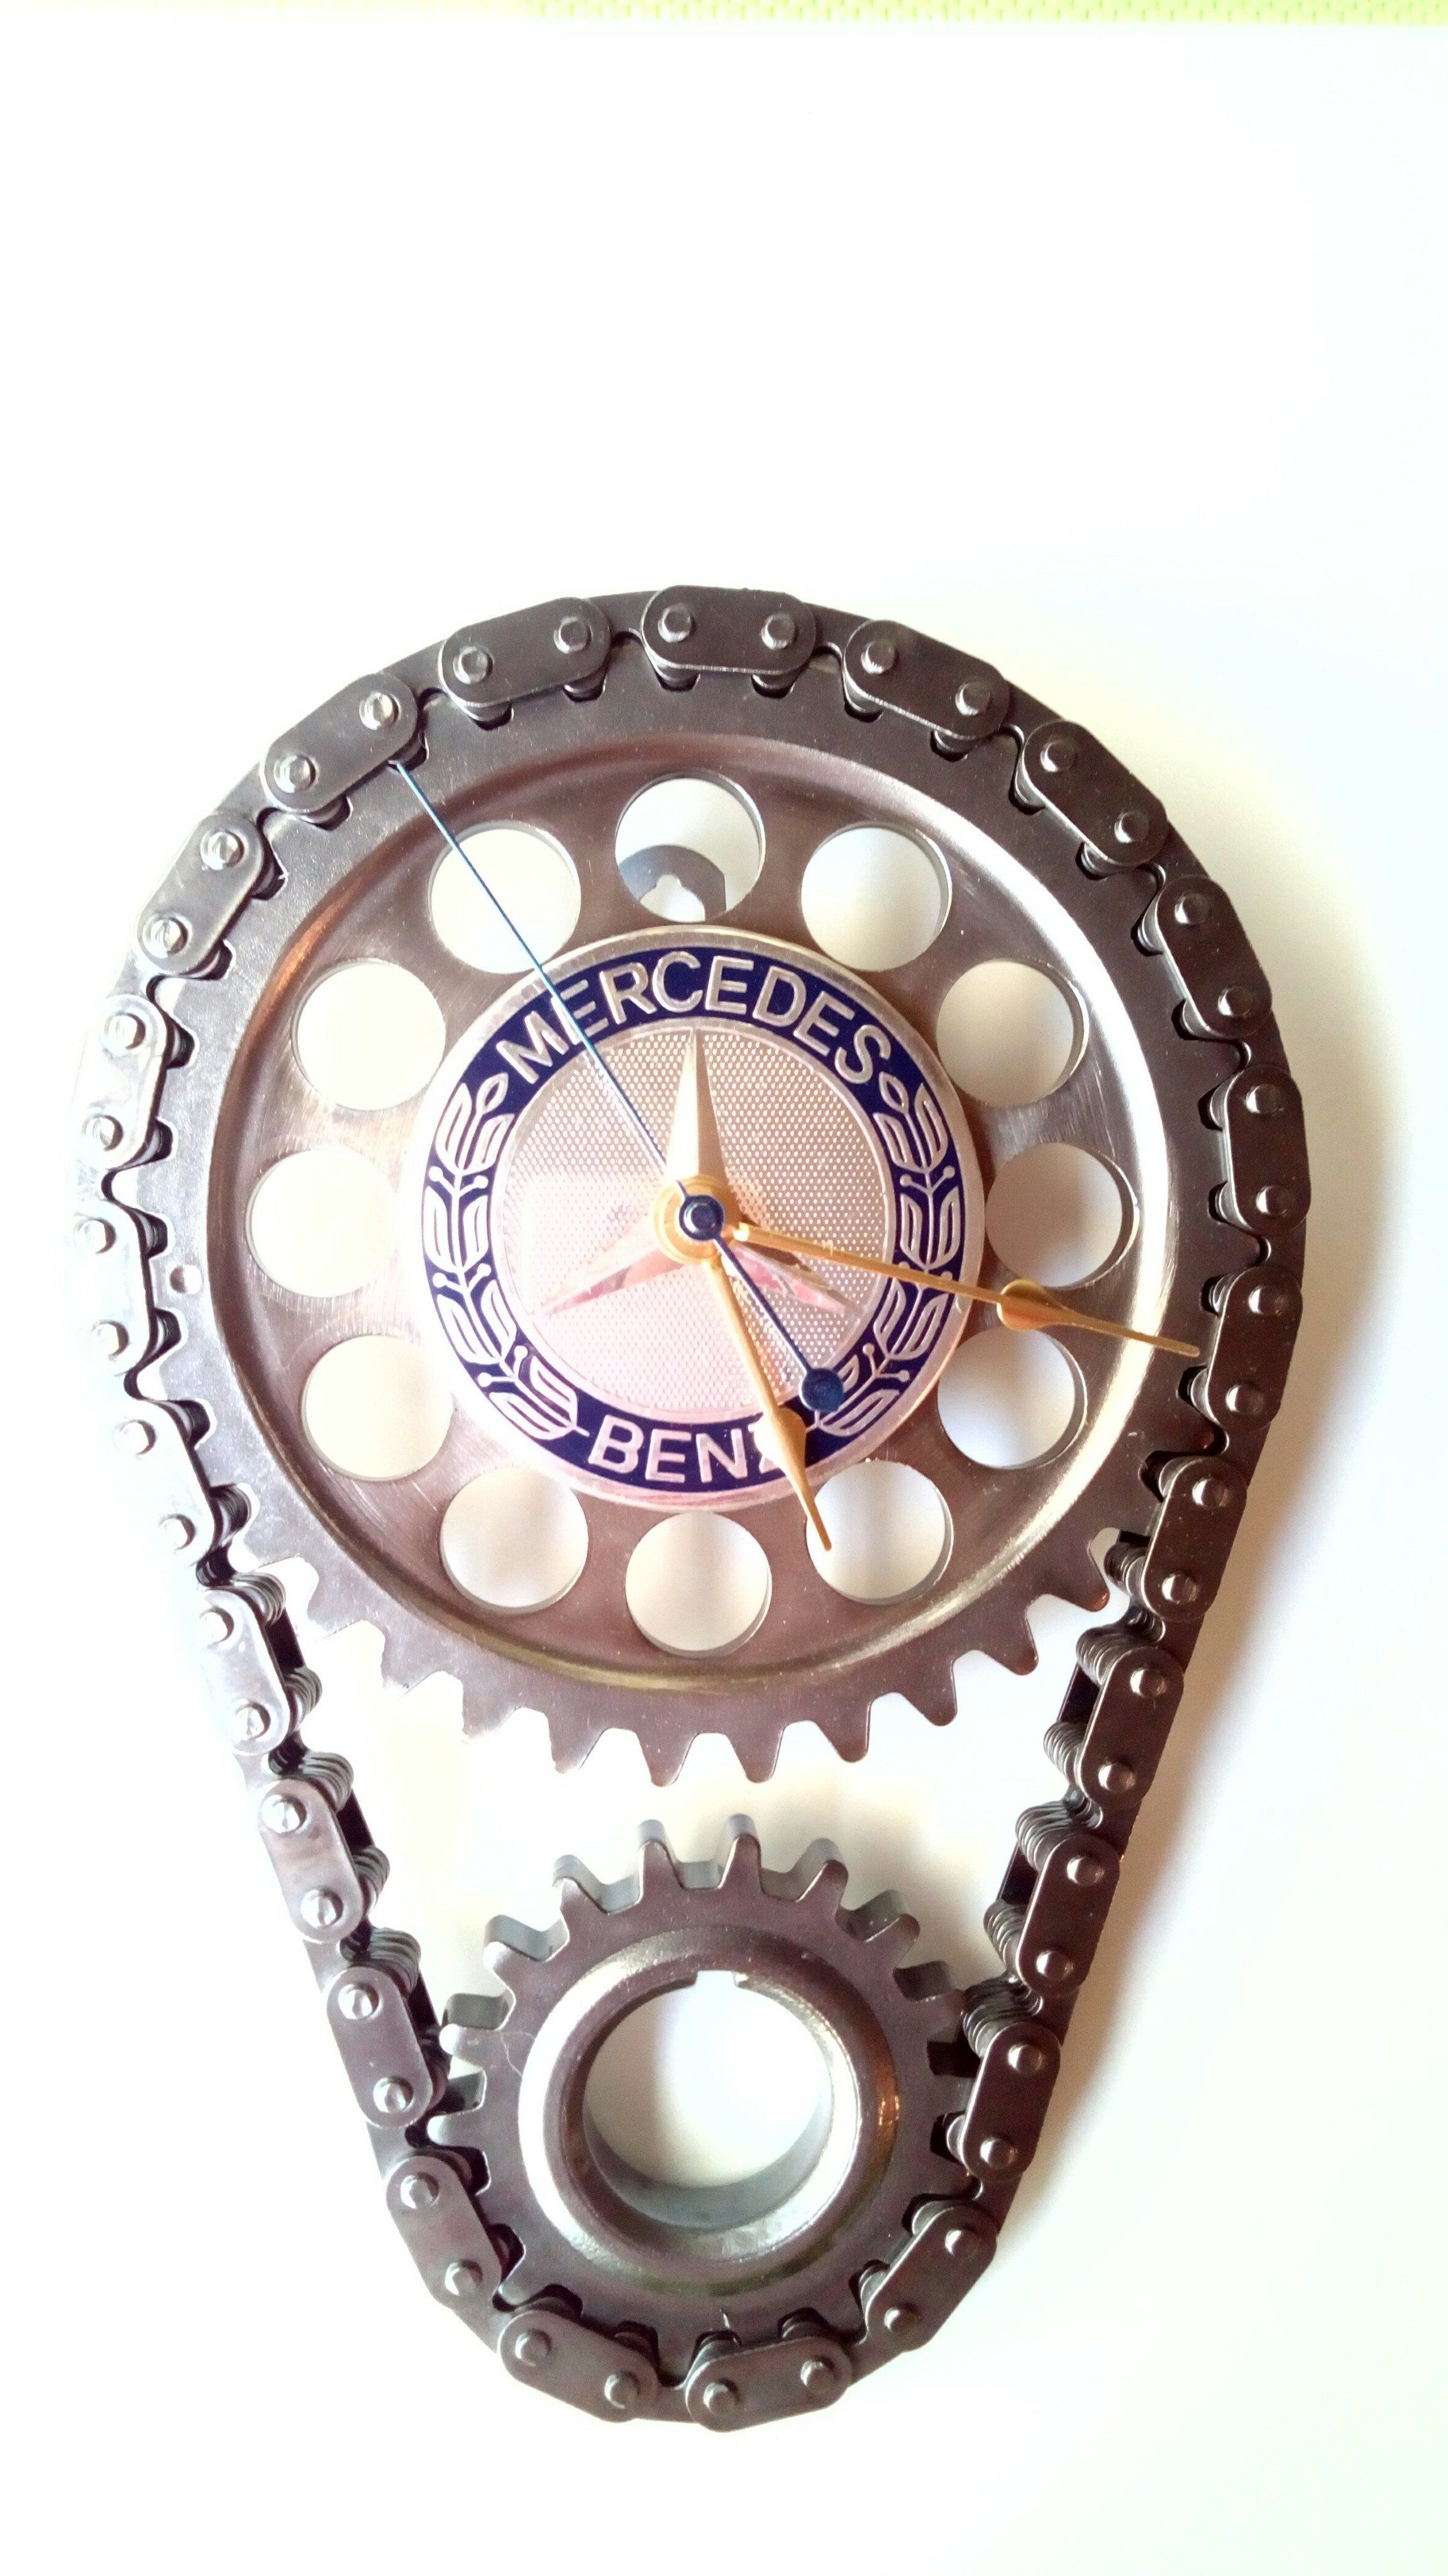 Mercedes benz engine timing gear and chain wall clock products mercedes benz engine timing gear and chain wall clock amipublicfo Choice Image